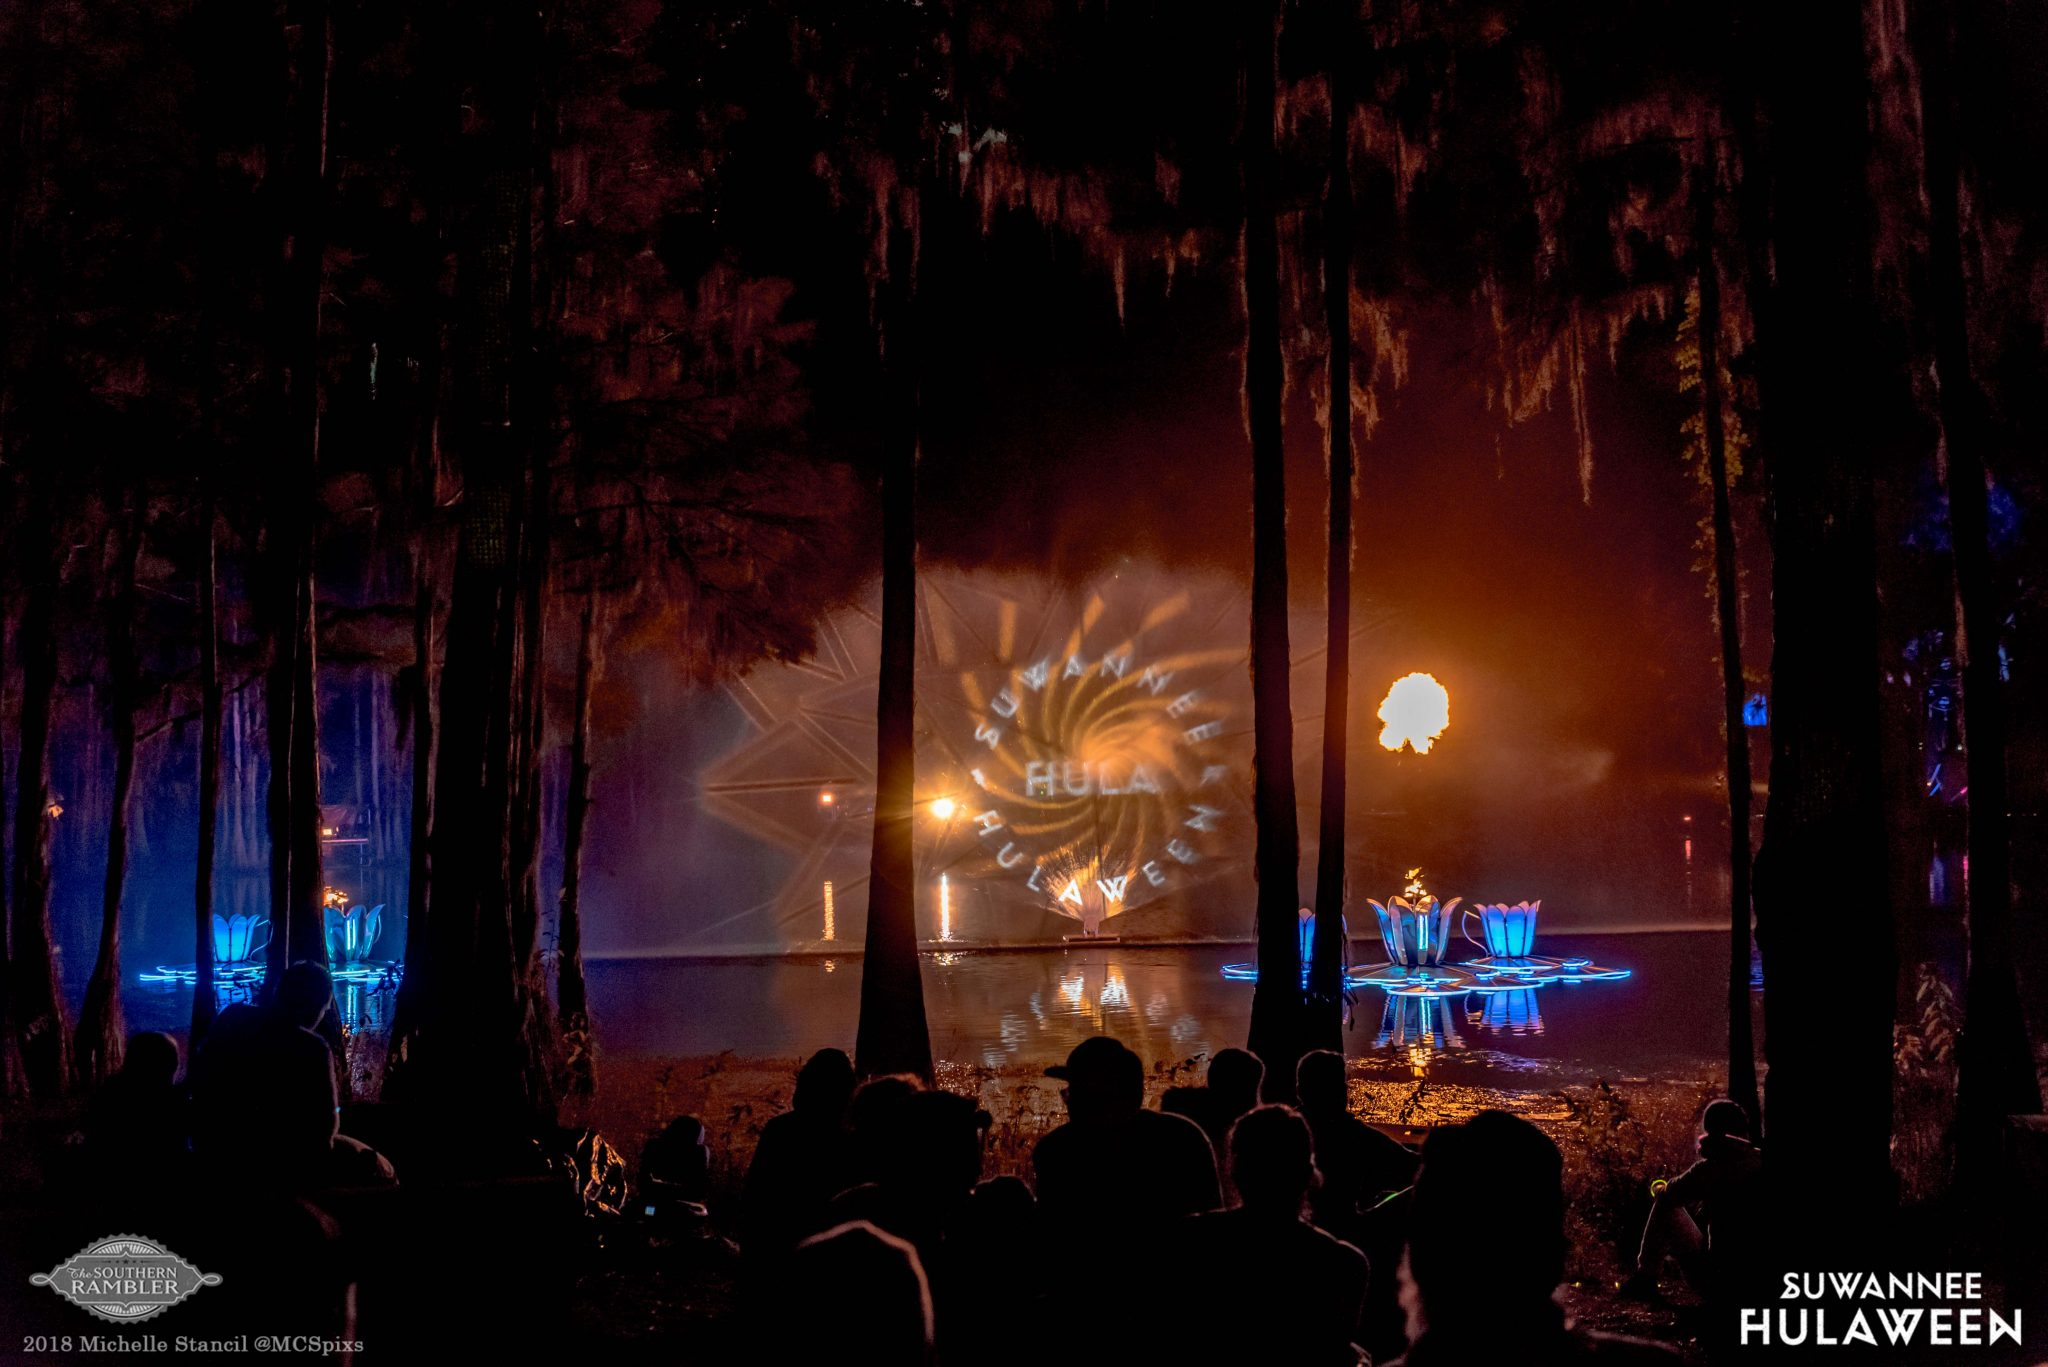 Suwannee Hulaween 2018 Review and Notable Moments | The Southern Rambler